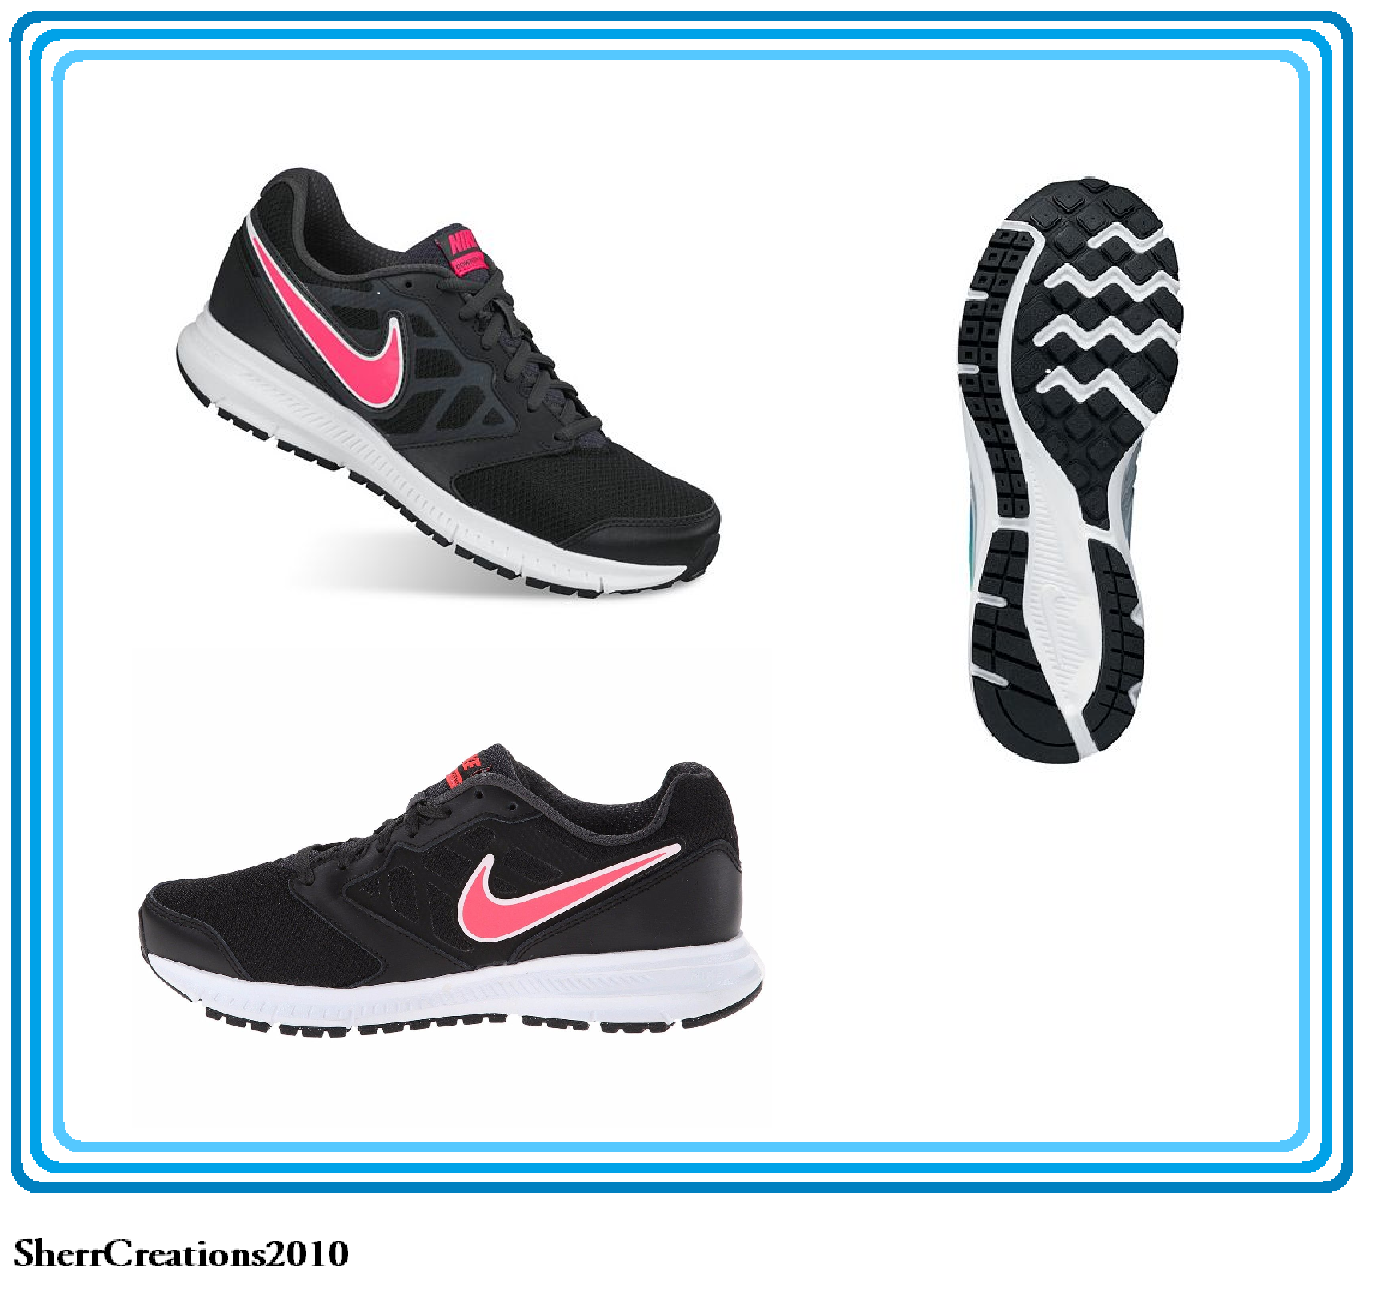 New Nike 684767-002 Women's Running Downshifter 6 Running Women's Athletic Shoe 342ed4